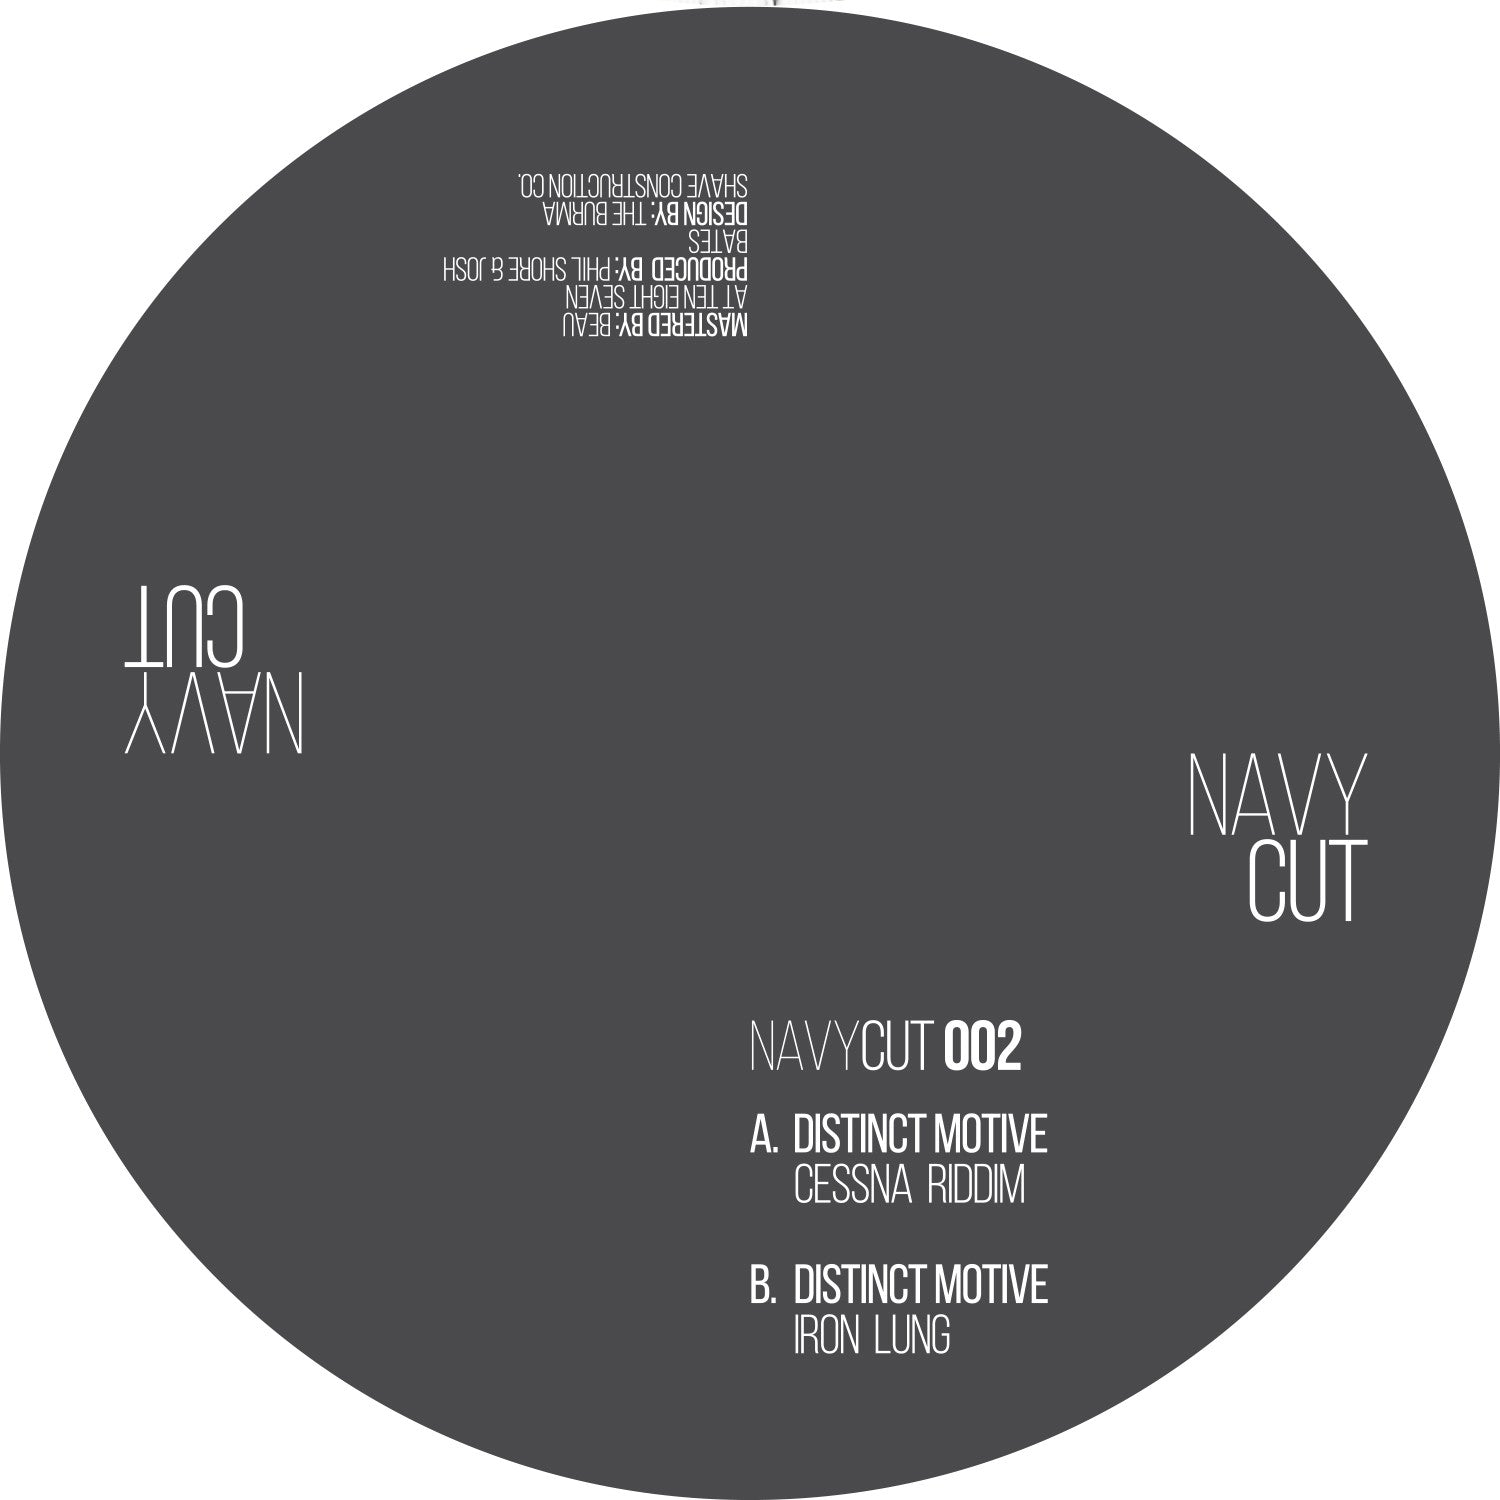 Distinct Motive - Cessna Riddim // Iron Lung , Vinyl - Navy Cut, Unearthed Sounds - 1